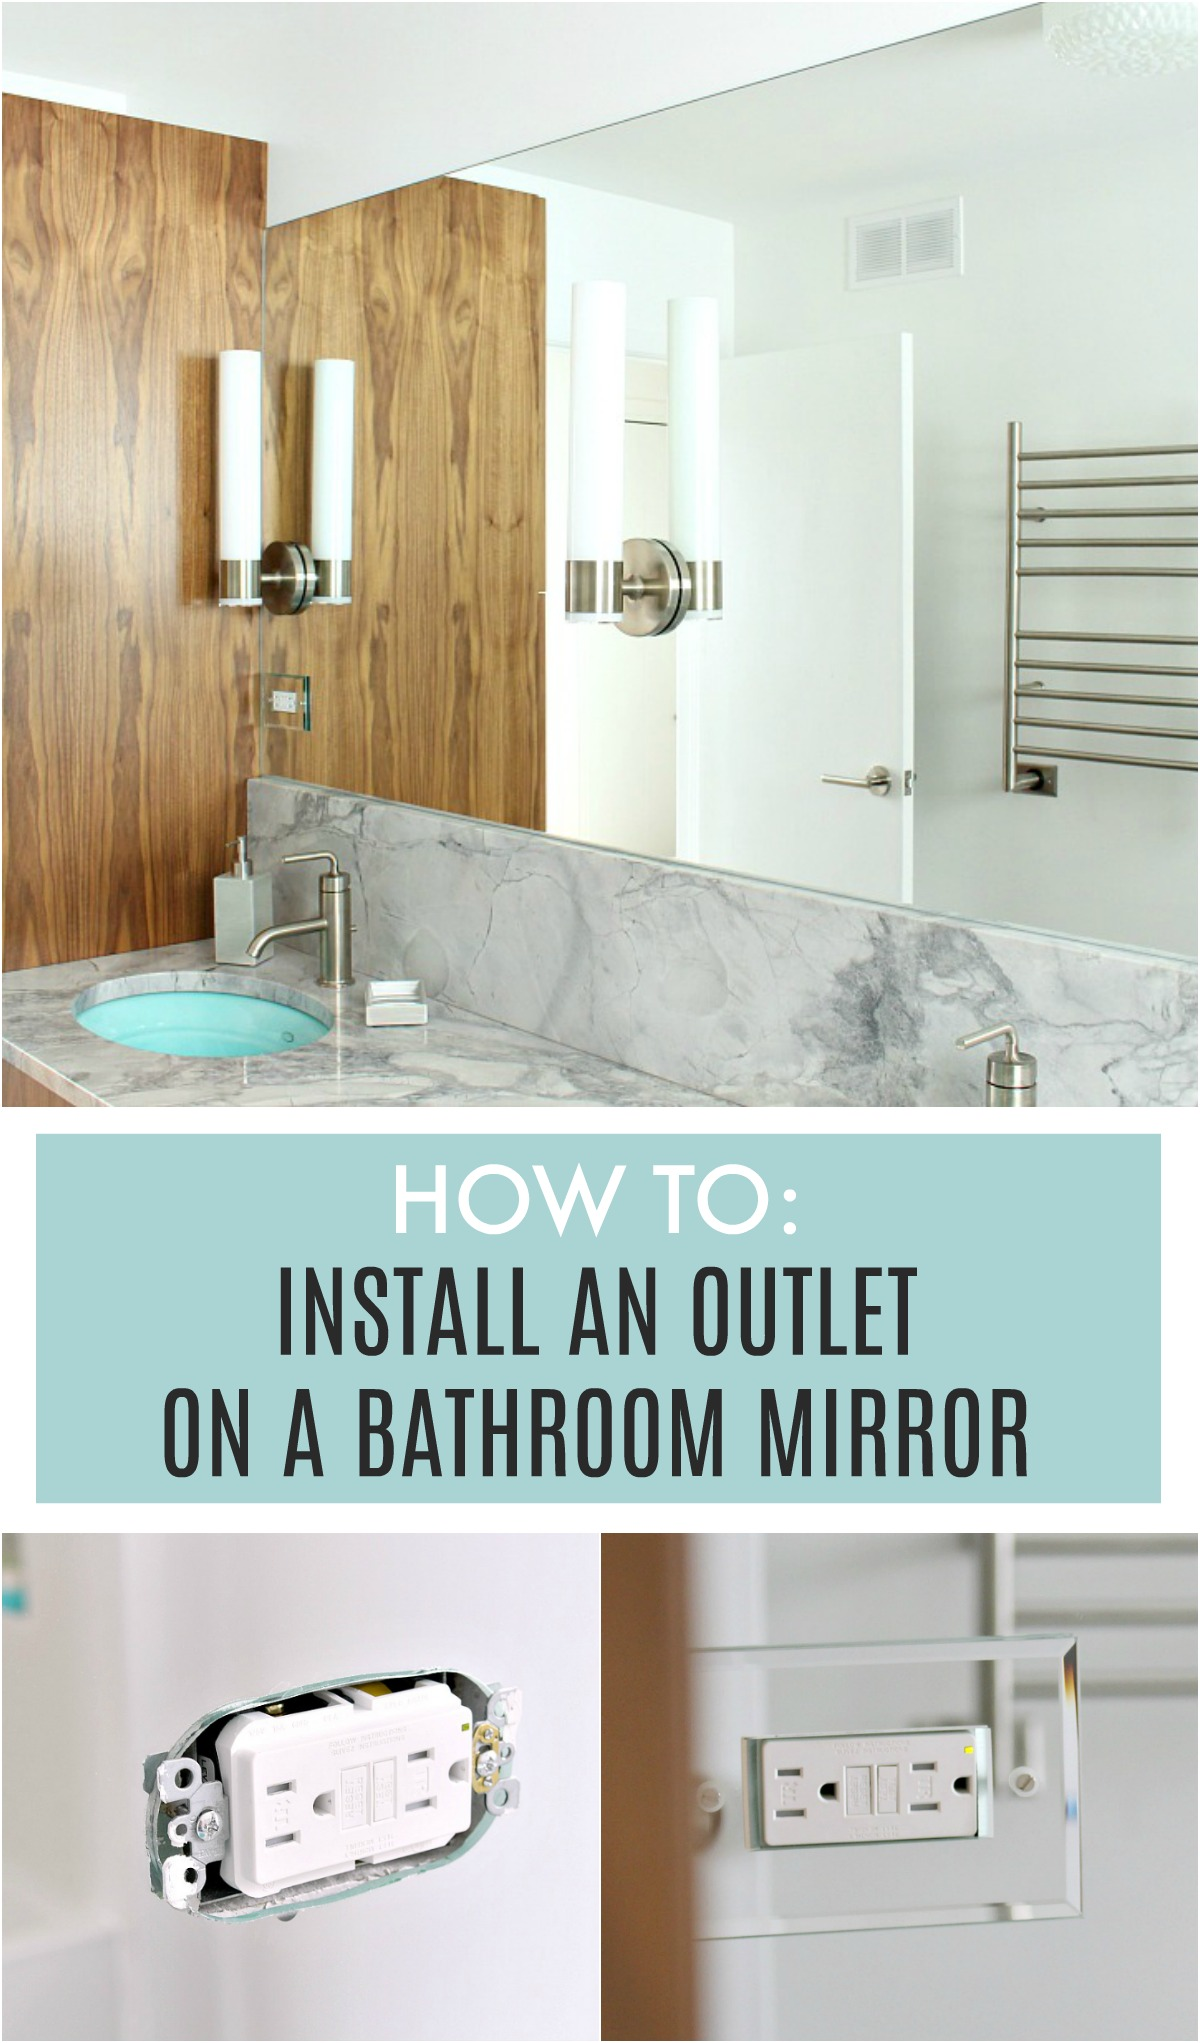 How to install an outlet on a mirror in a bathroom | Dans le Lakehouse, DIY renovating tips and tricks